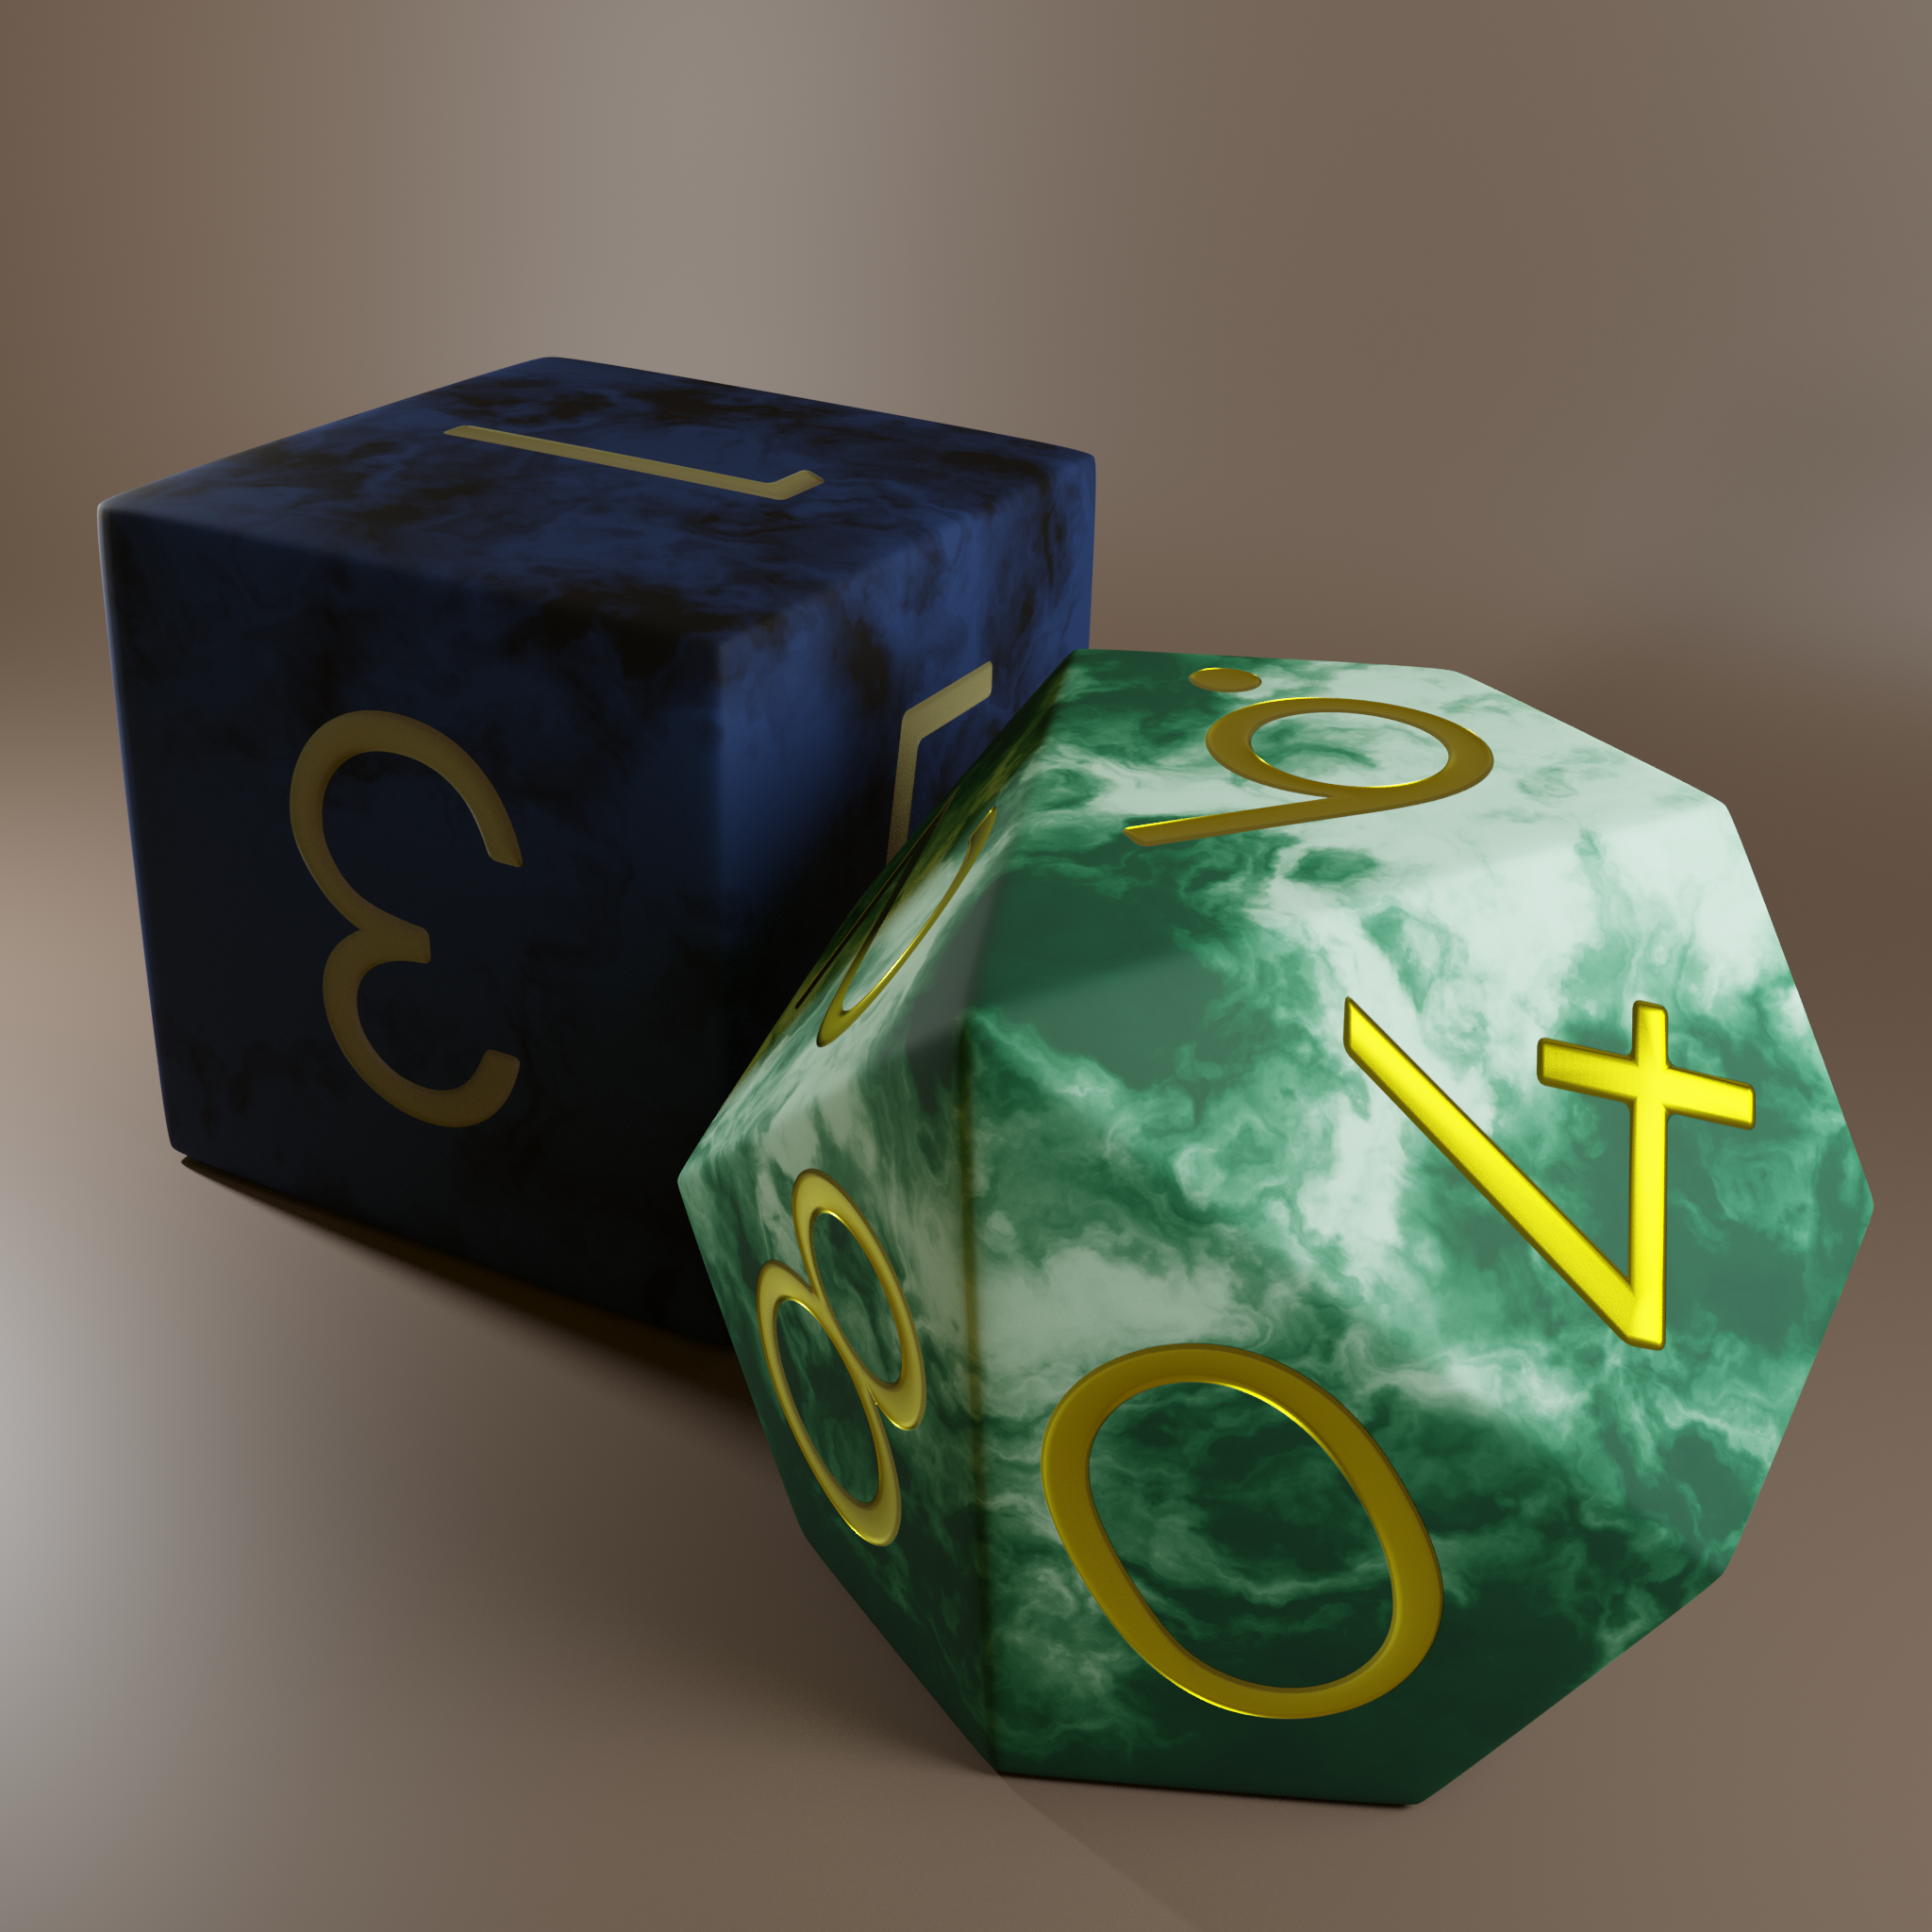 A D6 and a D10